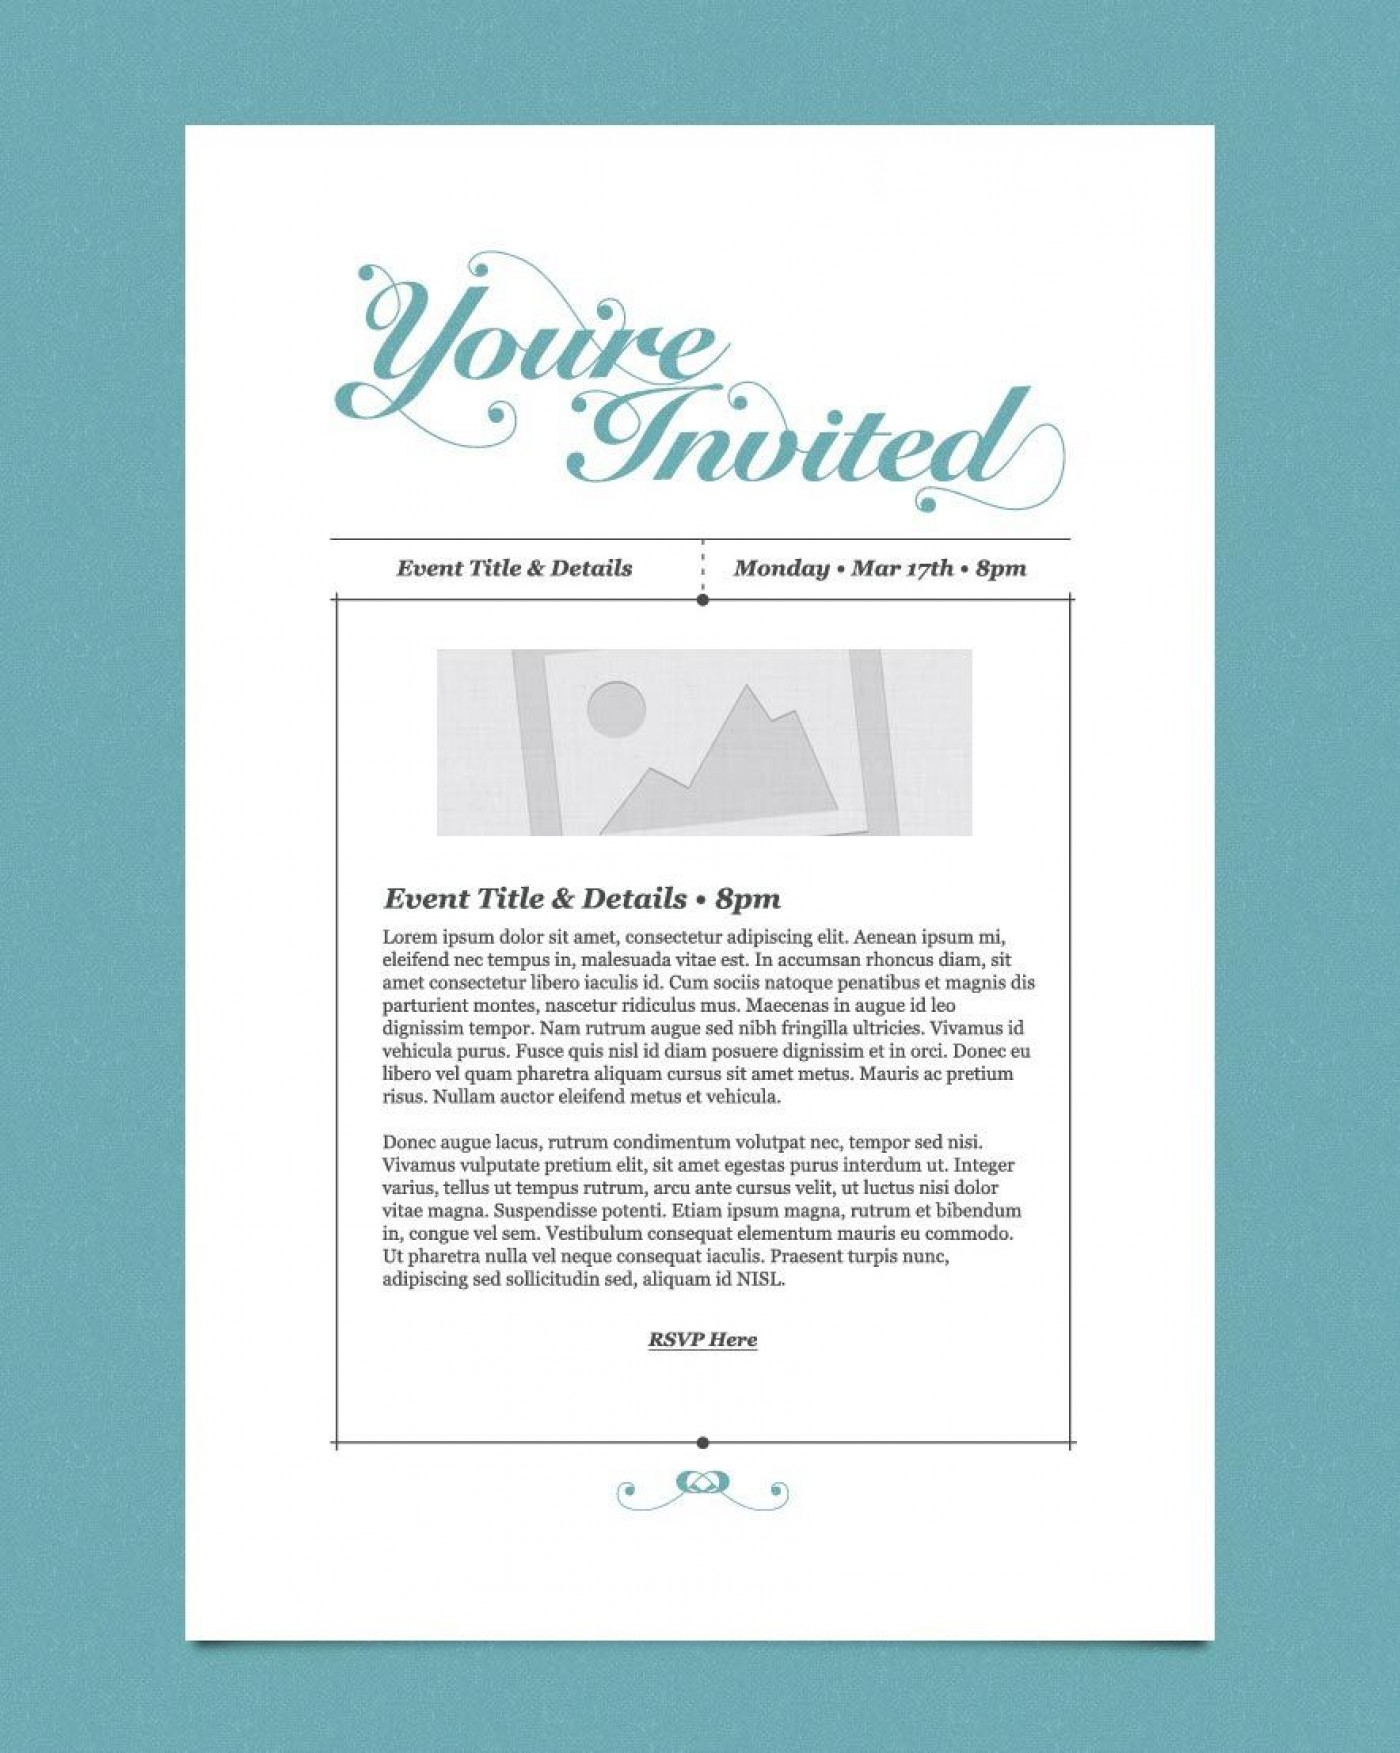 009 Impressive Free Busines Invitation Template For Word Highest Clarity 1400